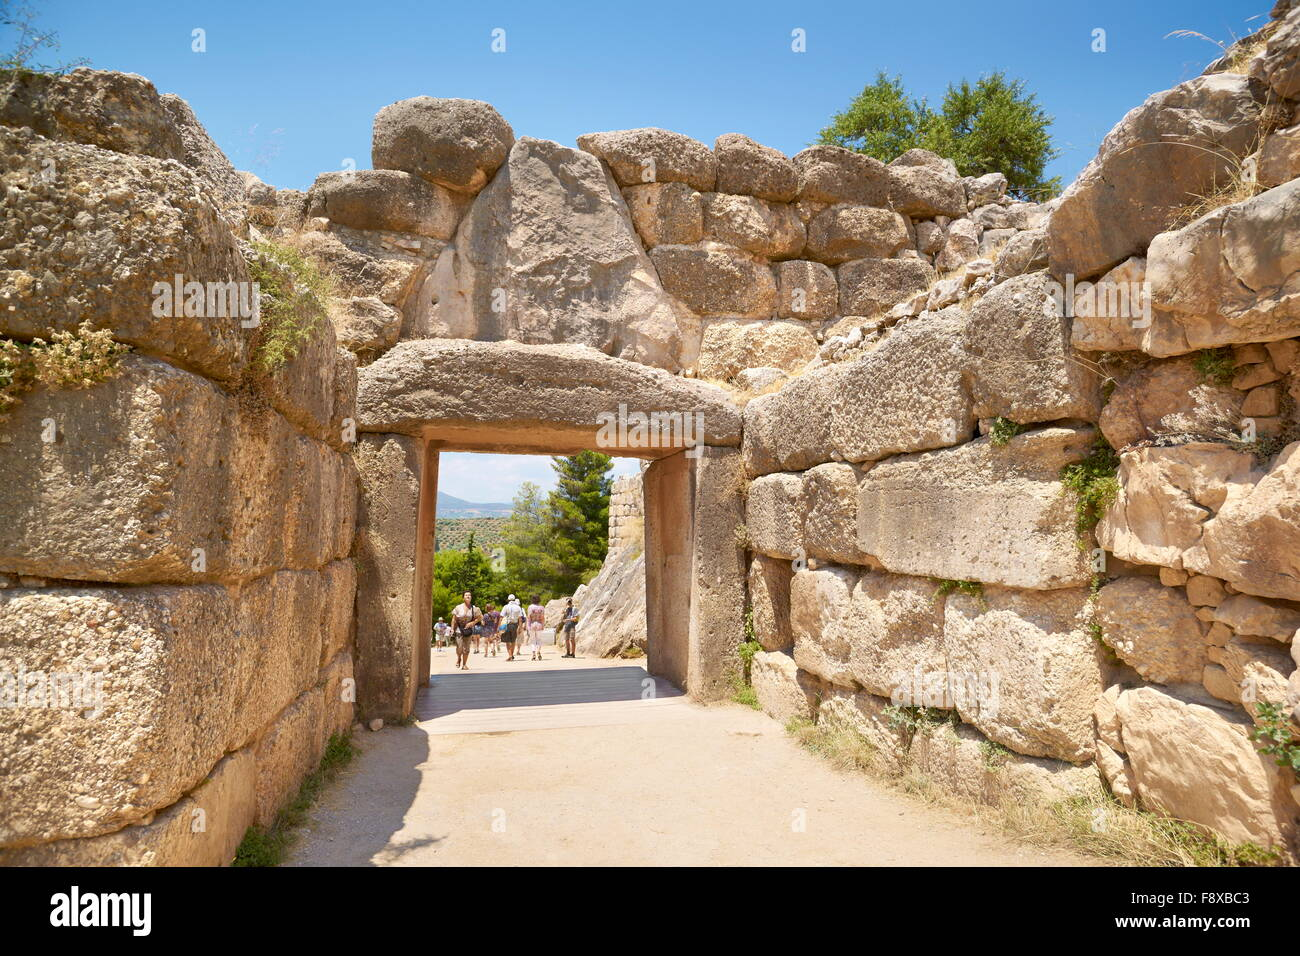 Ancient city of Mycenae, Liongate wall around the akropolis of Mykene, Peloponnese, Greece - Stock Image